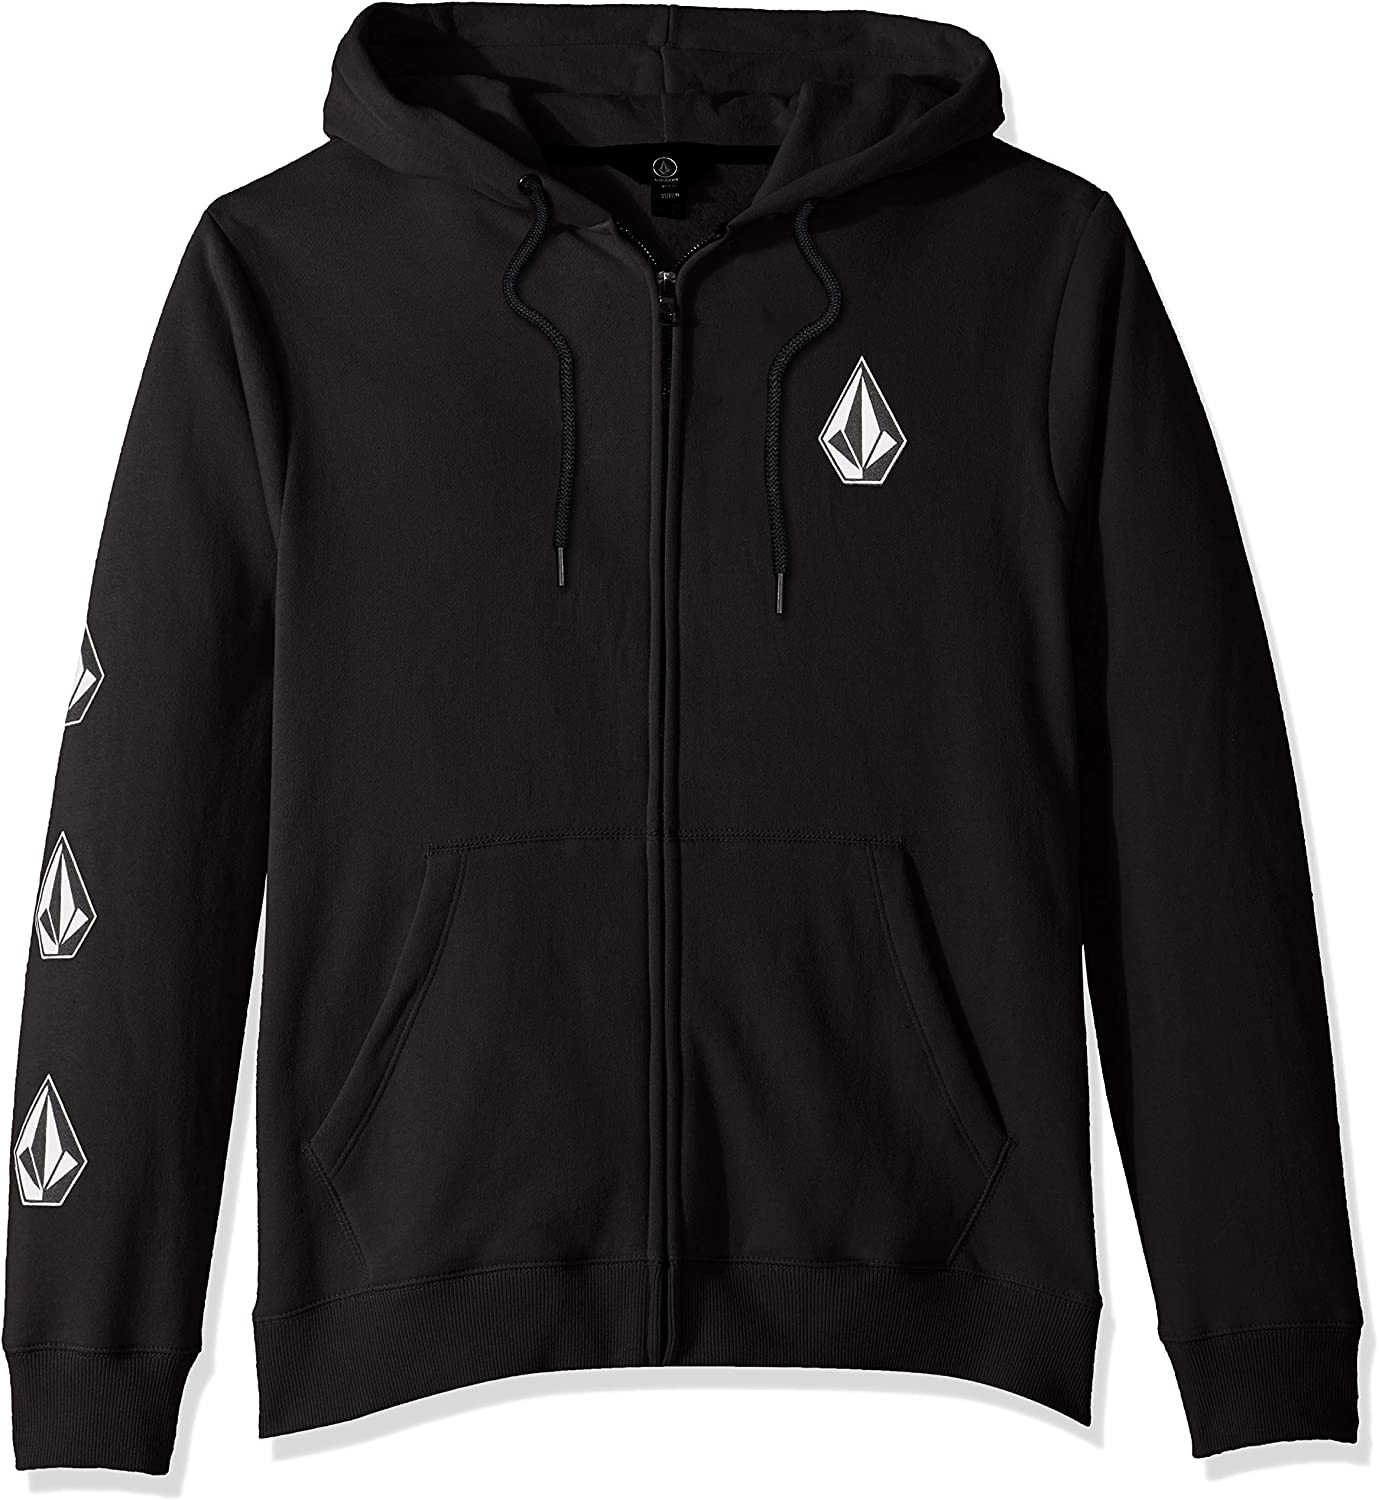 Volcom Men/'s Deadly Stone Zip-Up Hoodie Sand Brown Clothing Apparel Hooded